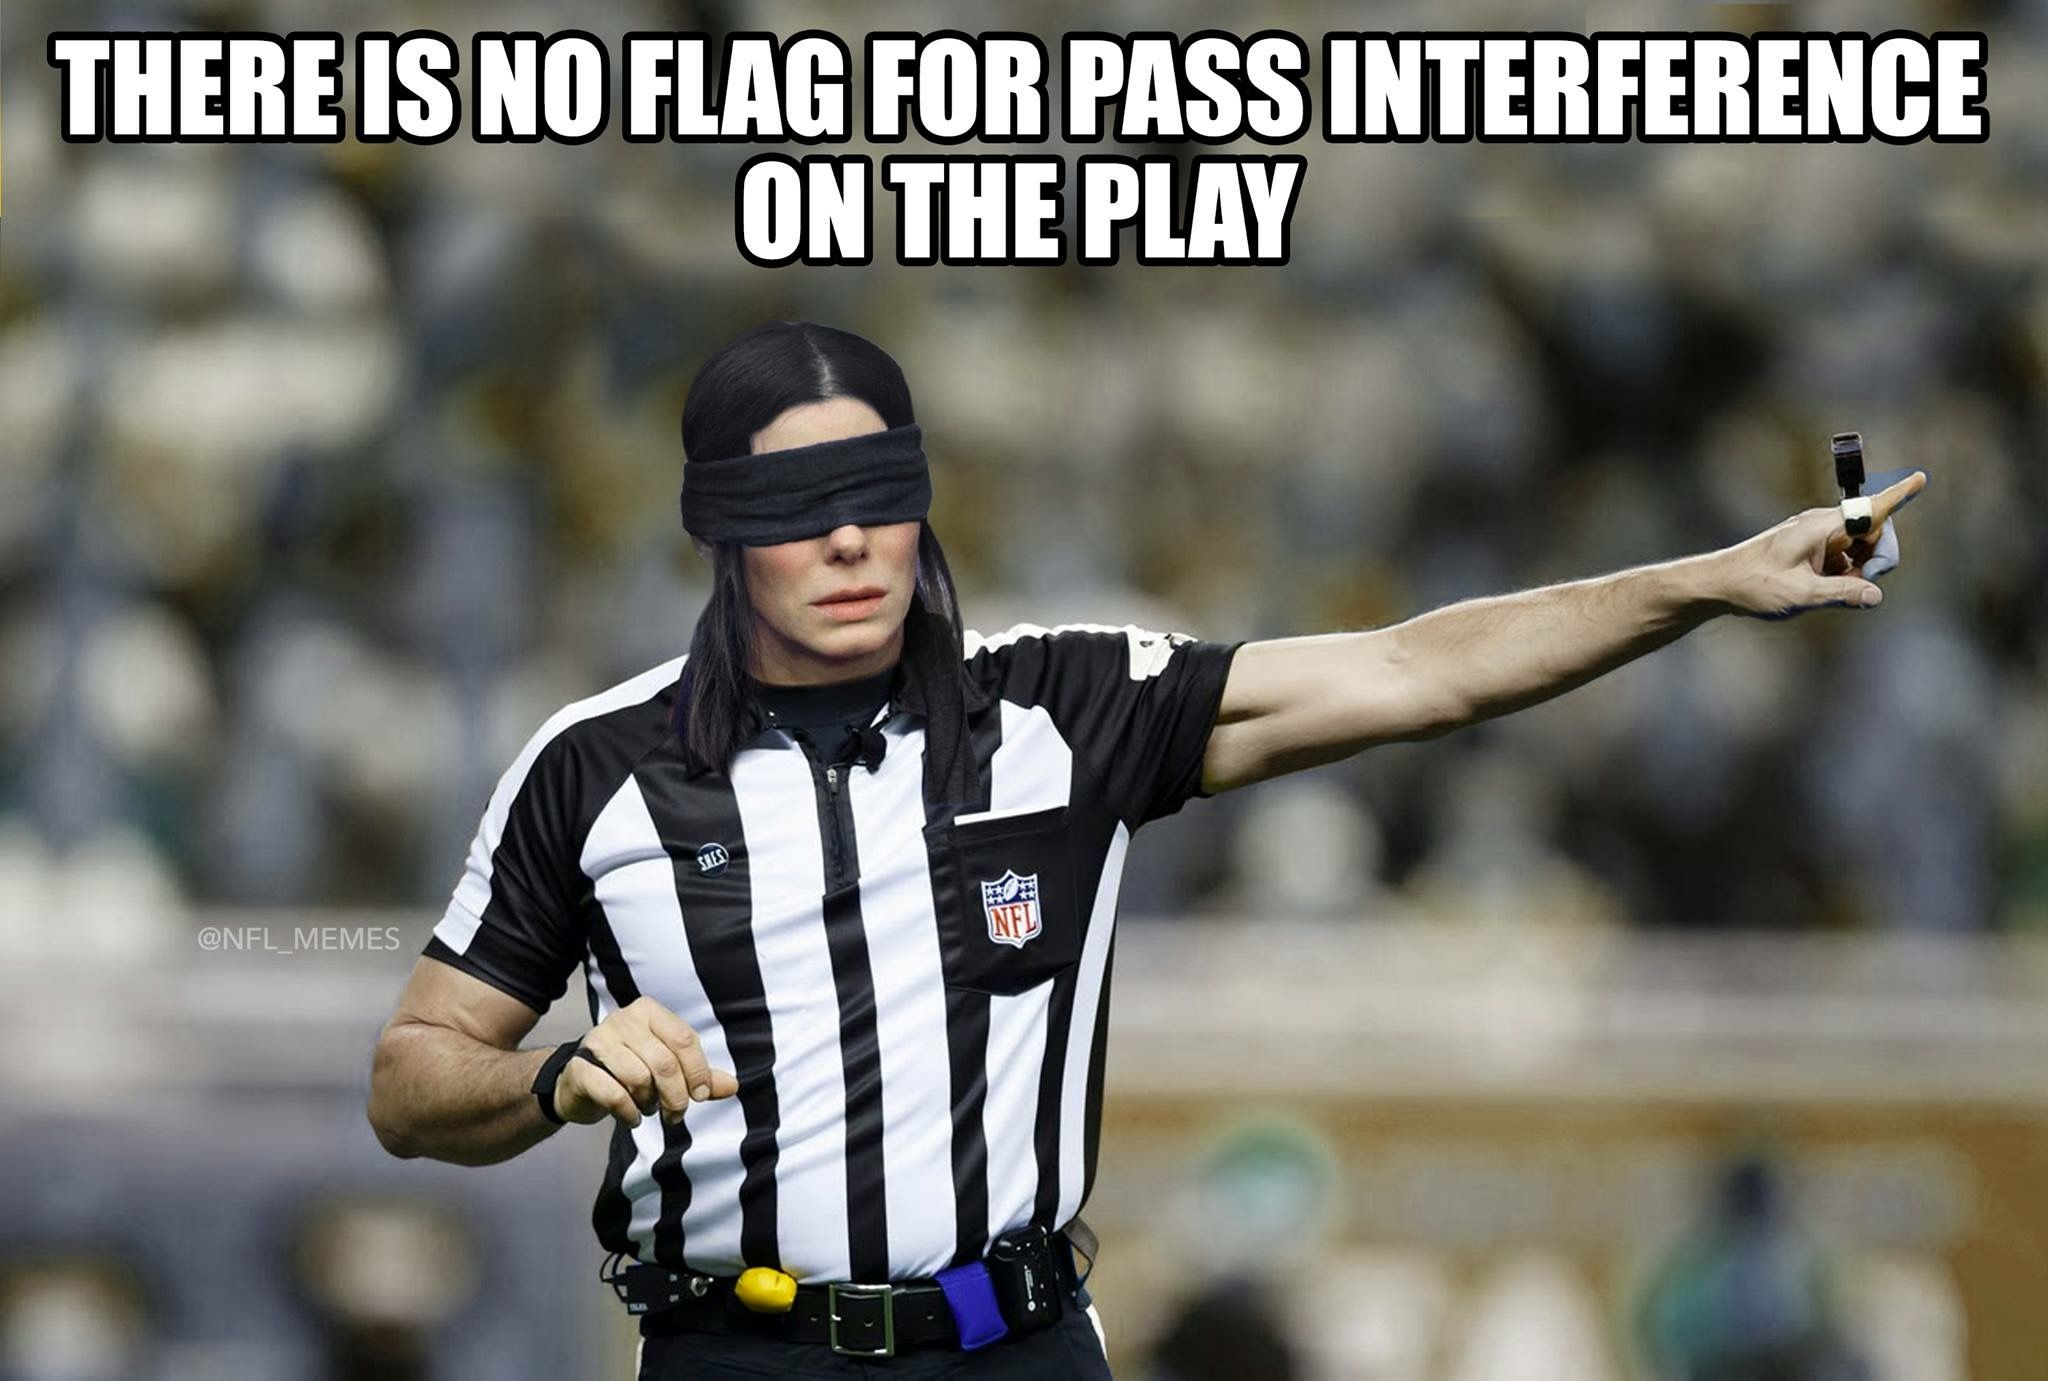 Pin by Lauren Cachera on Sports Nfl funny, Nfl memes, Nfl